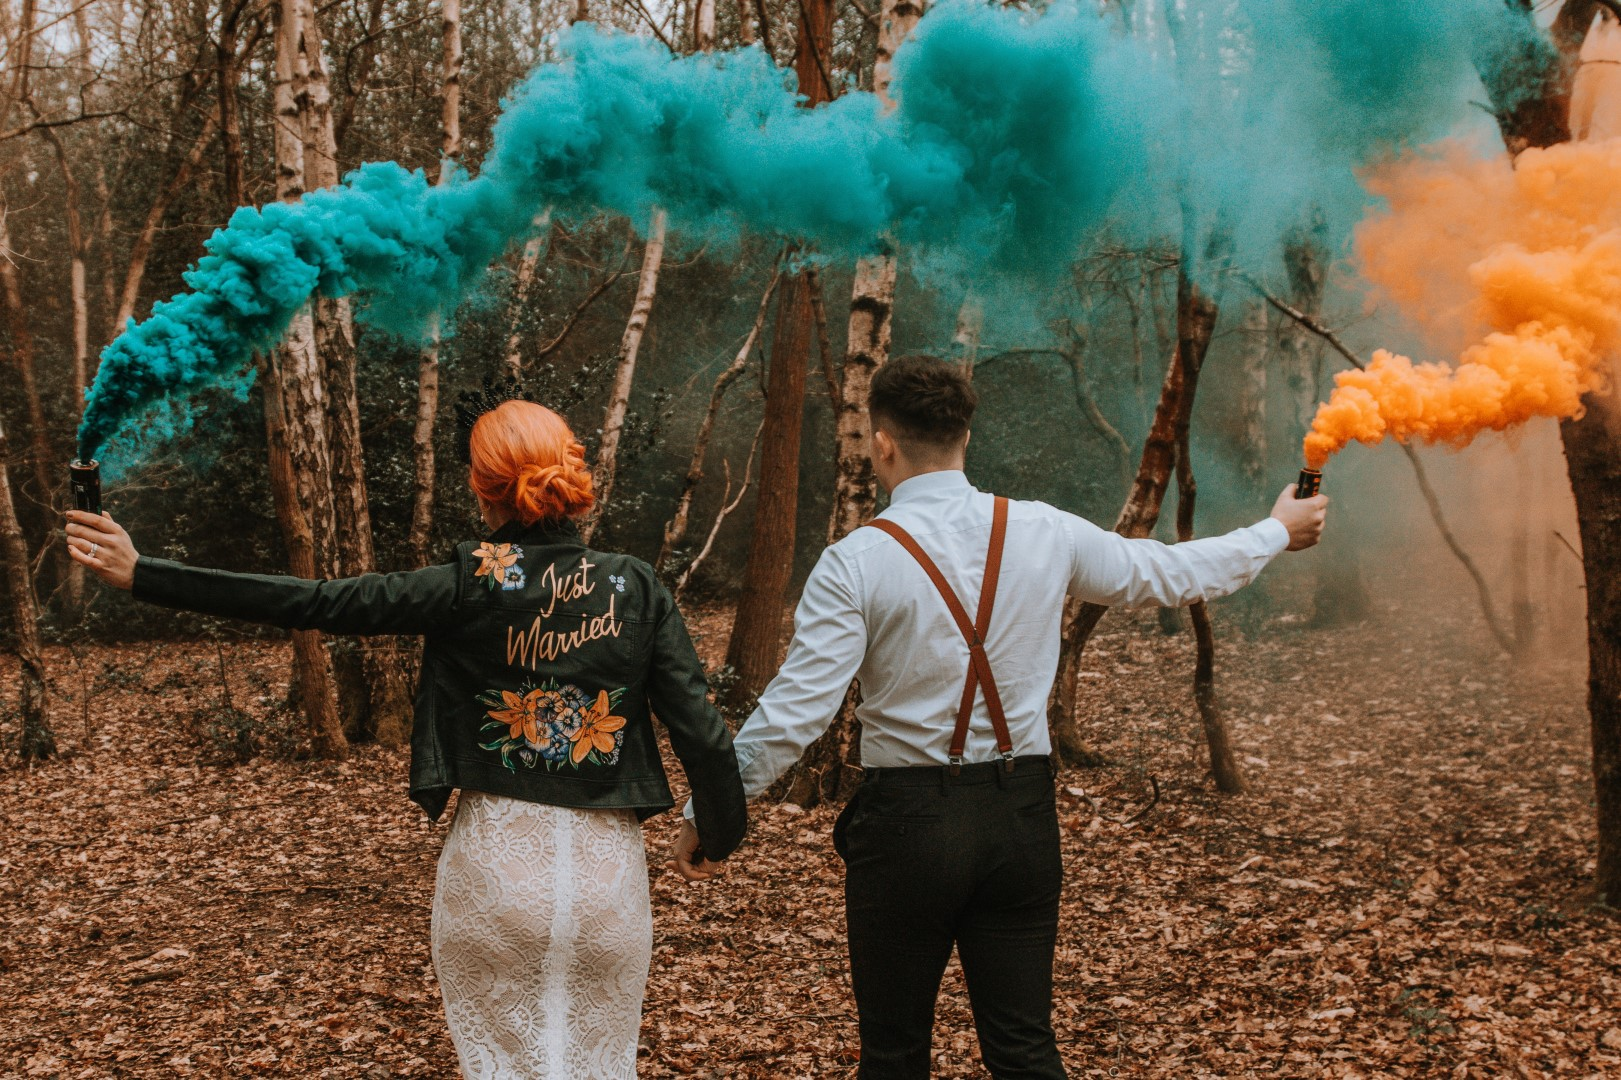 Alternative Forest Wedding - Sammy Leas Retro Emporium -Photography By Wills- alternative wedding - unconventional wedding- edgy woodland wedding- smoke bomb photography- wedding smoke bomb